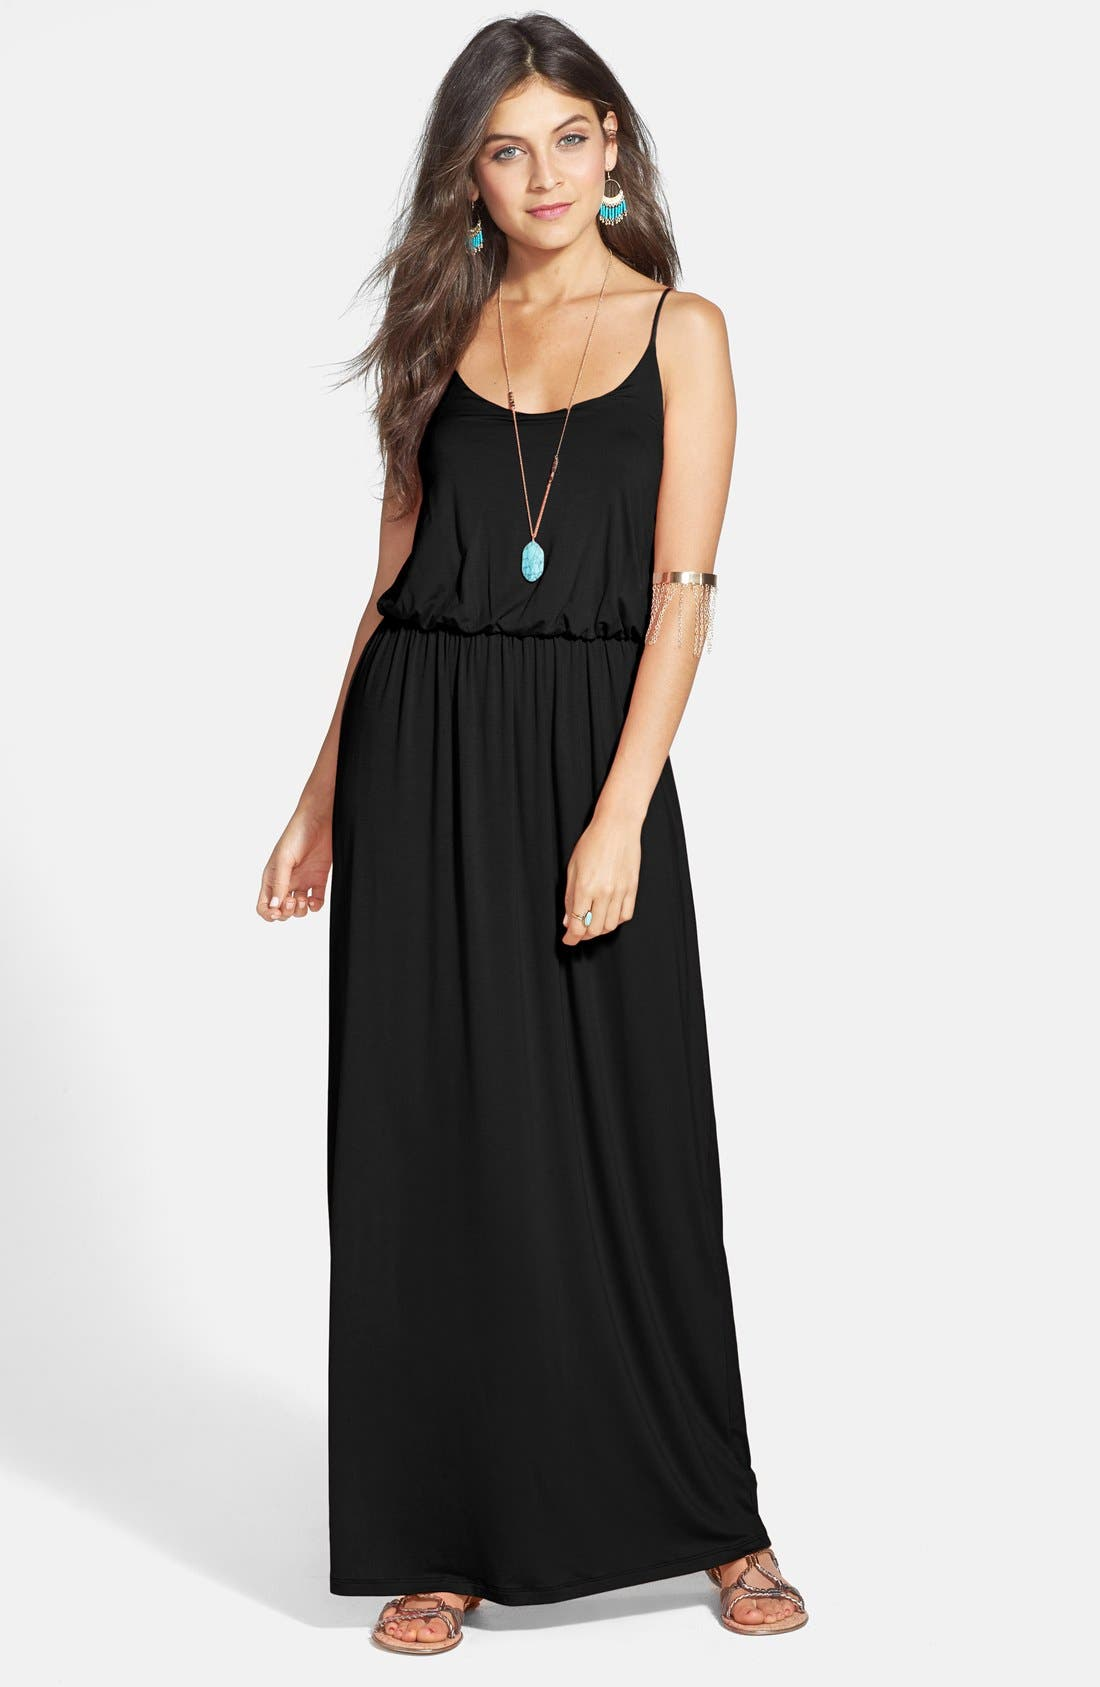 Women's Dresses | Nordstrom